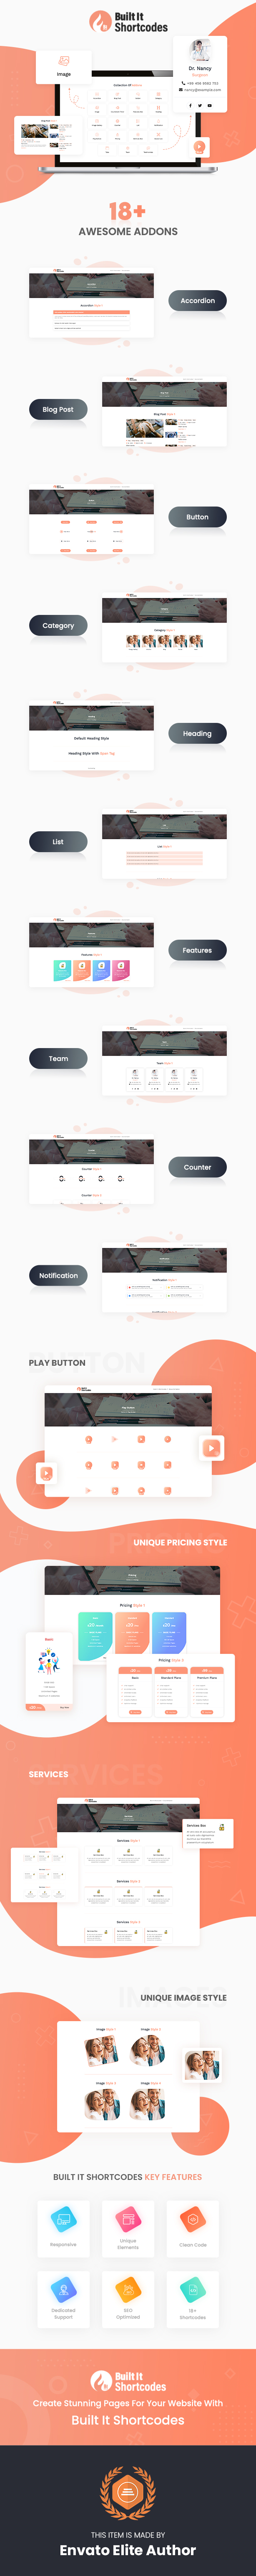 Built It - WP Bakery Page Builder Extensions Addon (formerly for Visual Composer) - 1